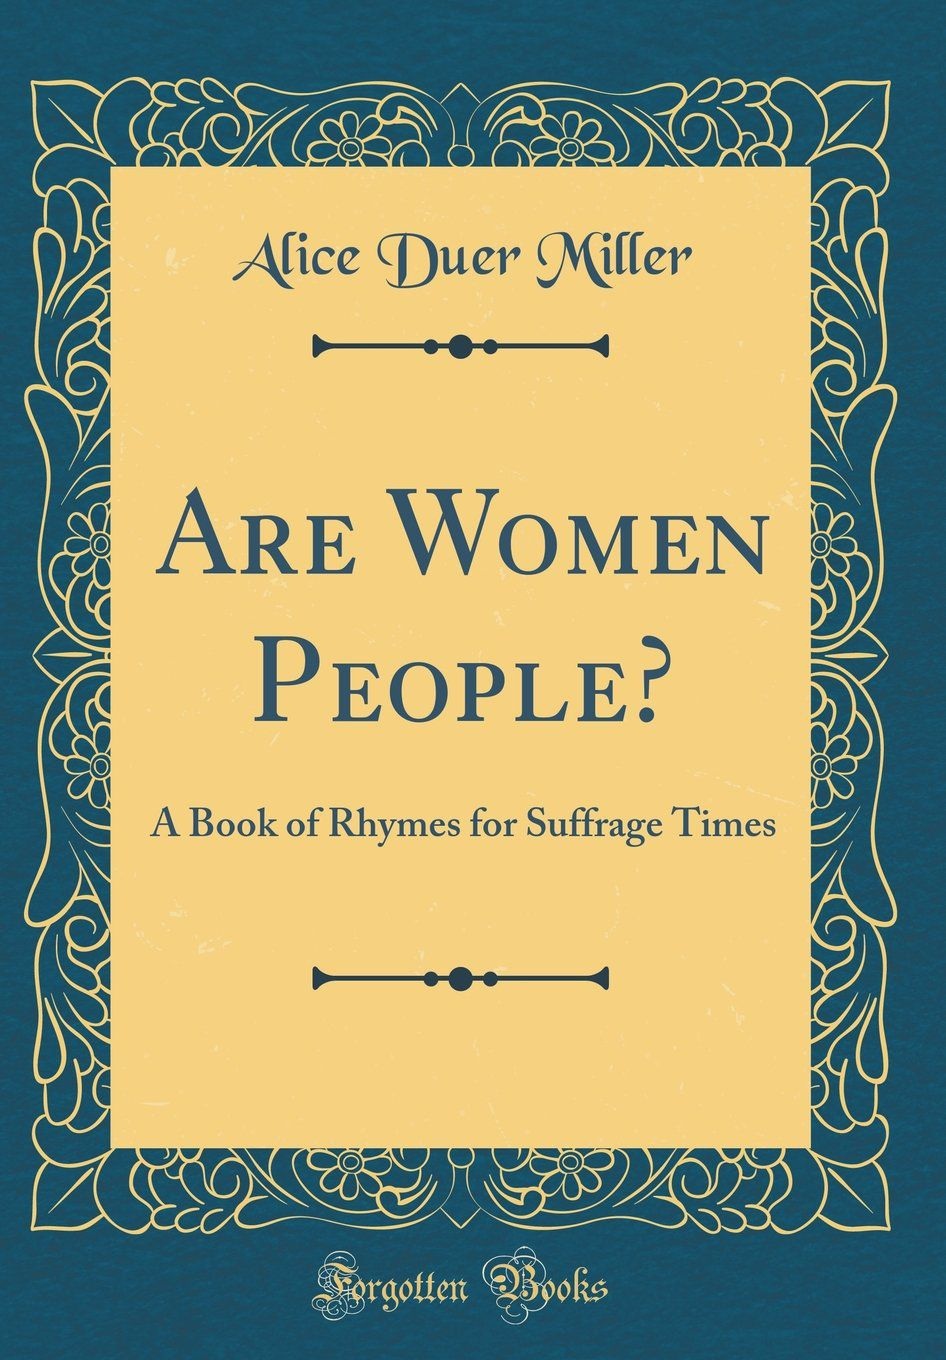 Are Women People? by Alice Duer Miller